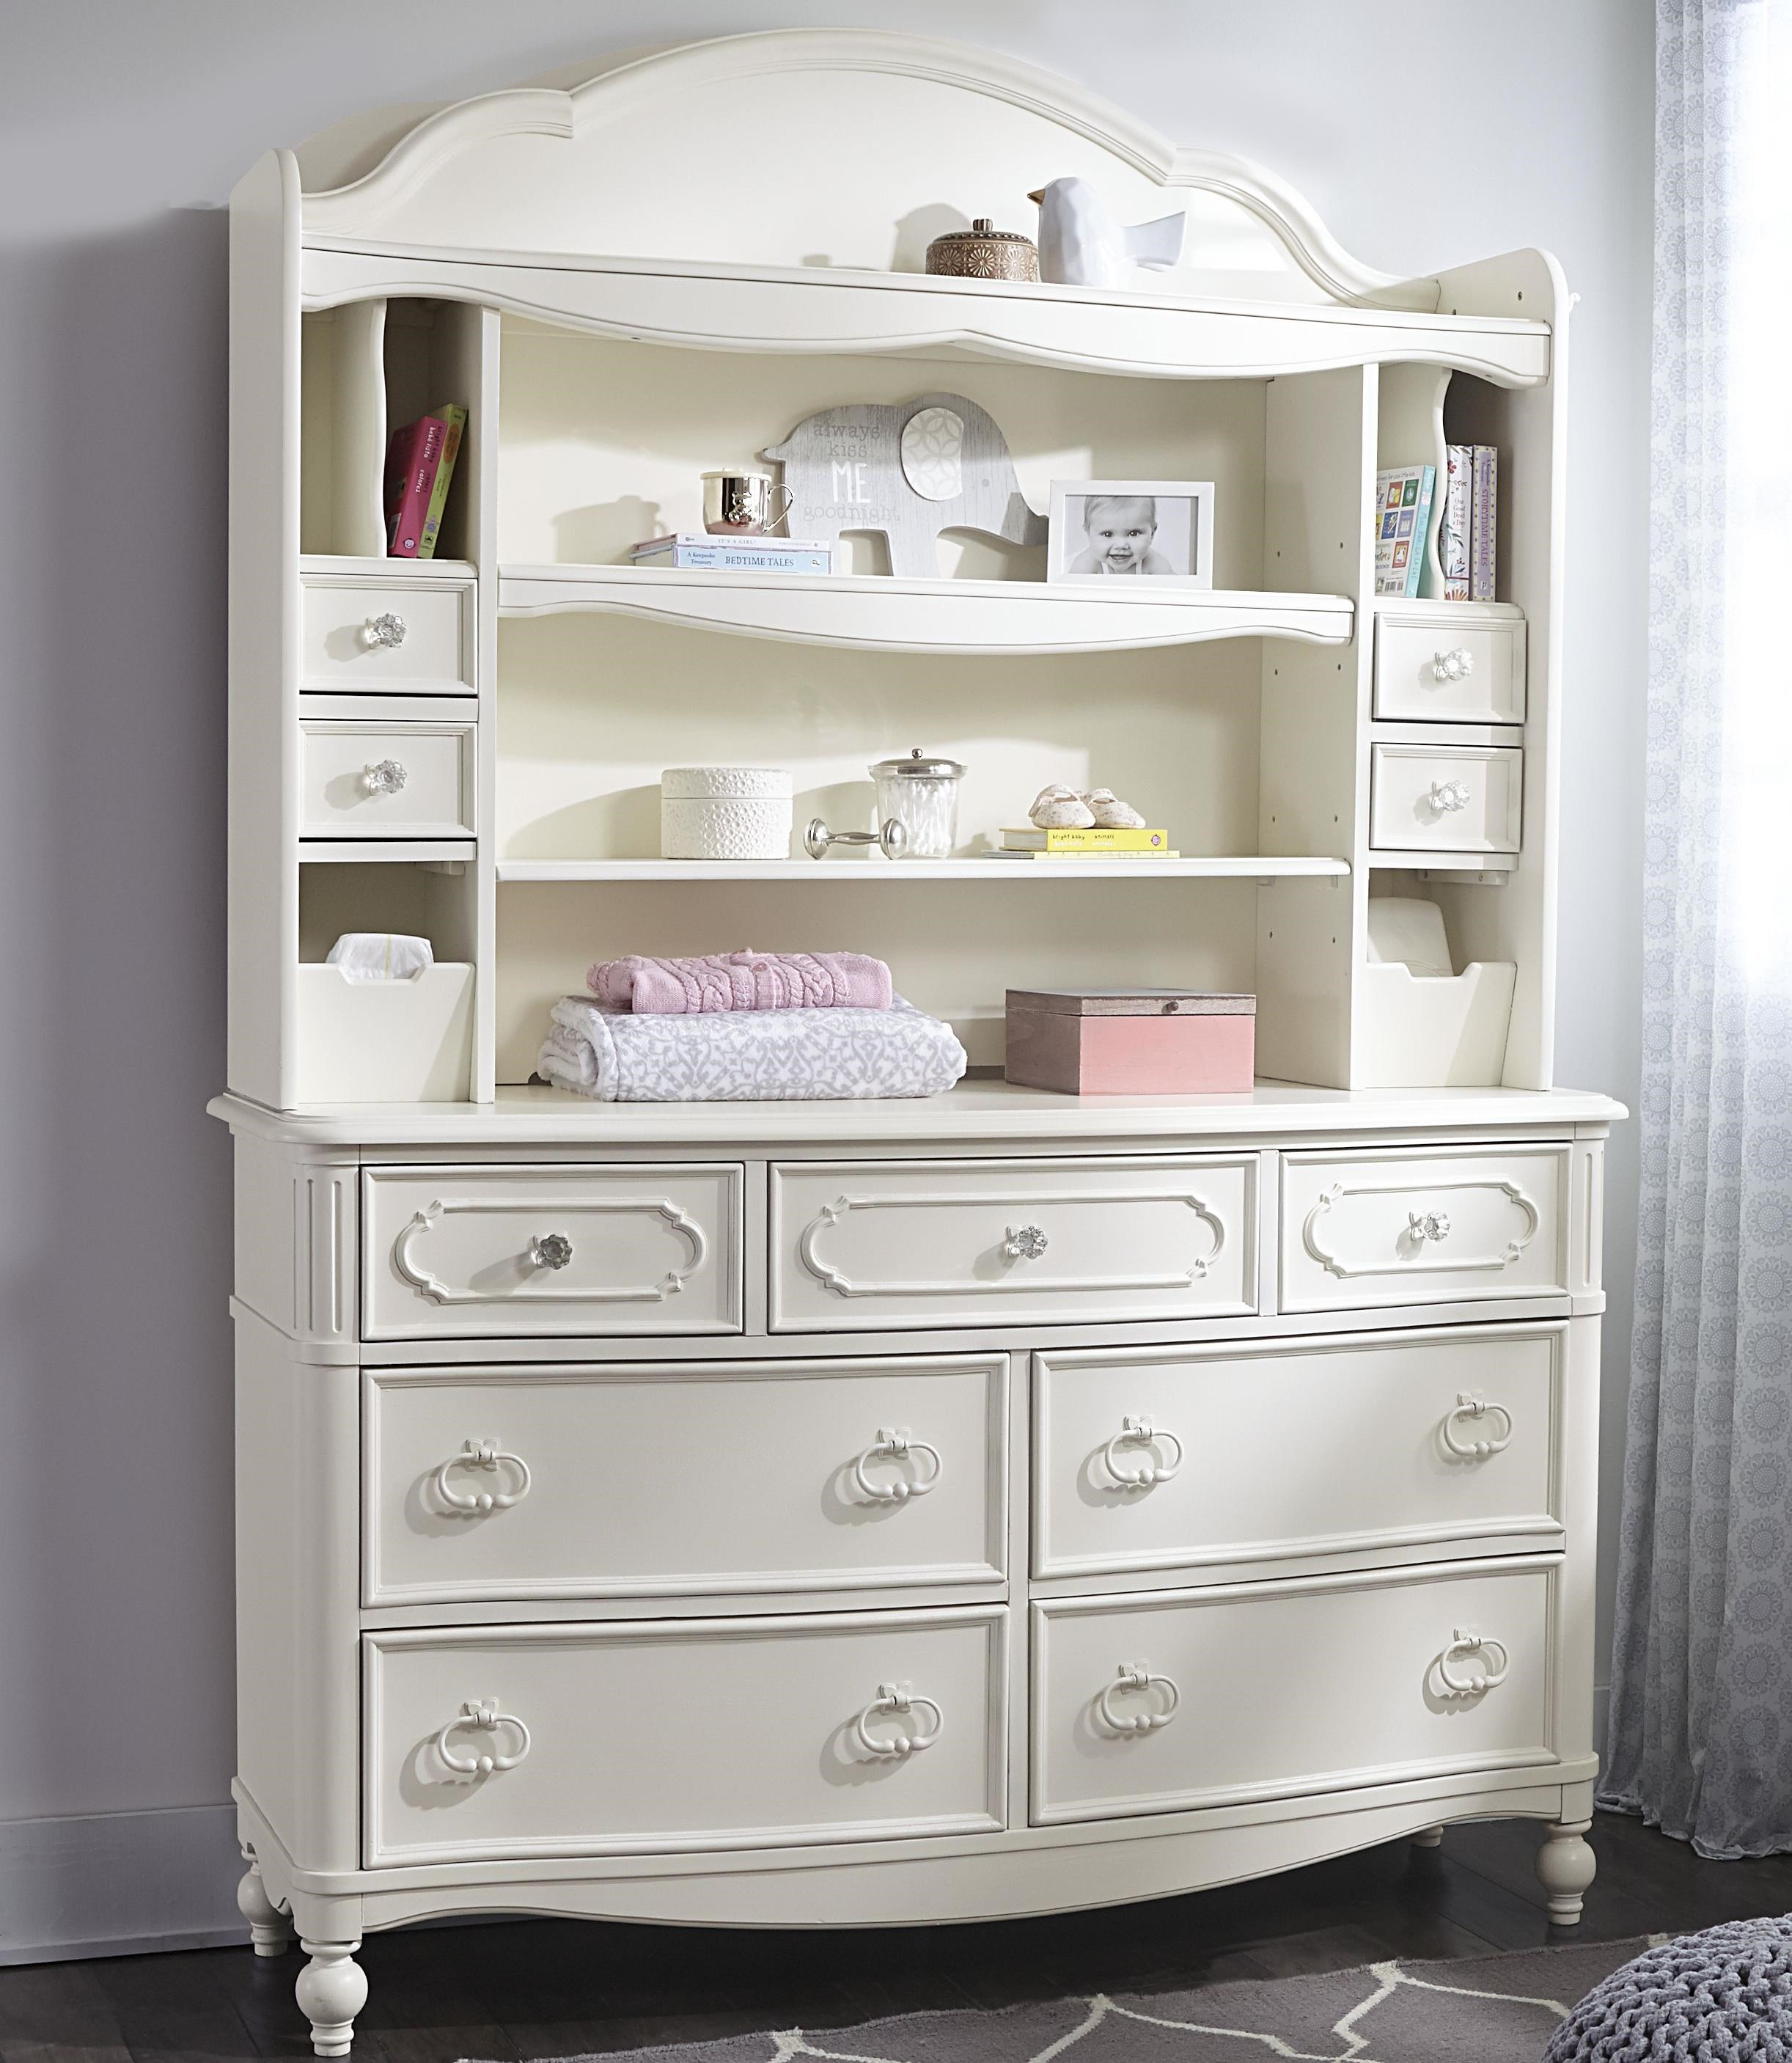 Etonnant Legacy Classic Kids Harmony Dresser + Changing Hutch With Strap Access